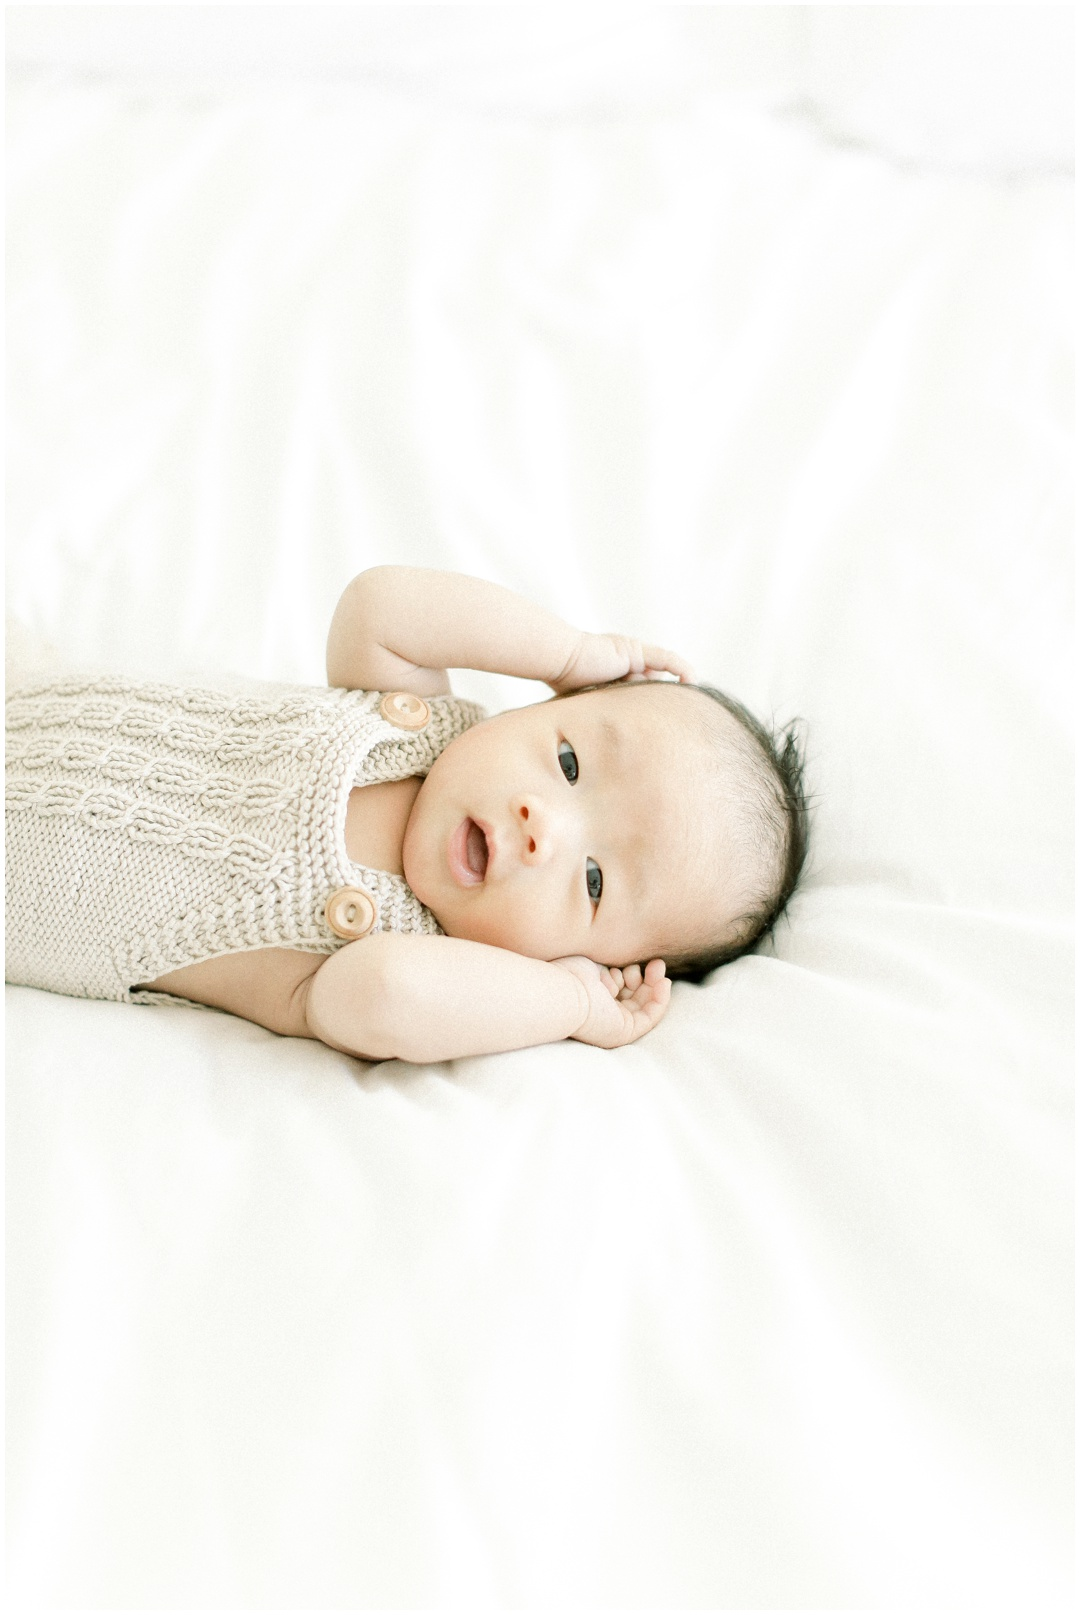 Orange_County_Maternity_Photographer_Newport_Beach_Family_Photographer_Newport_Beach_Newborn_Photographer_Orange_County_Family_Photographer_Cori_Kleckner_Photography_Huntington_Beach_Photographer_Karen_Liao_Family_2596.jpg